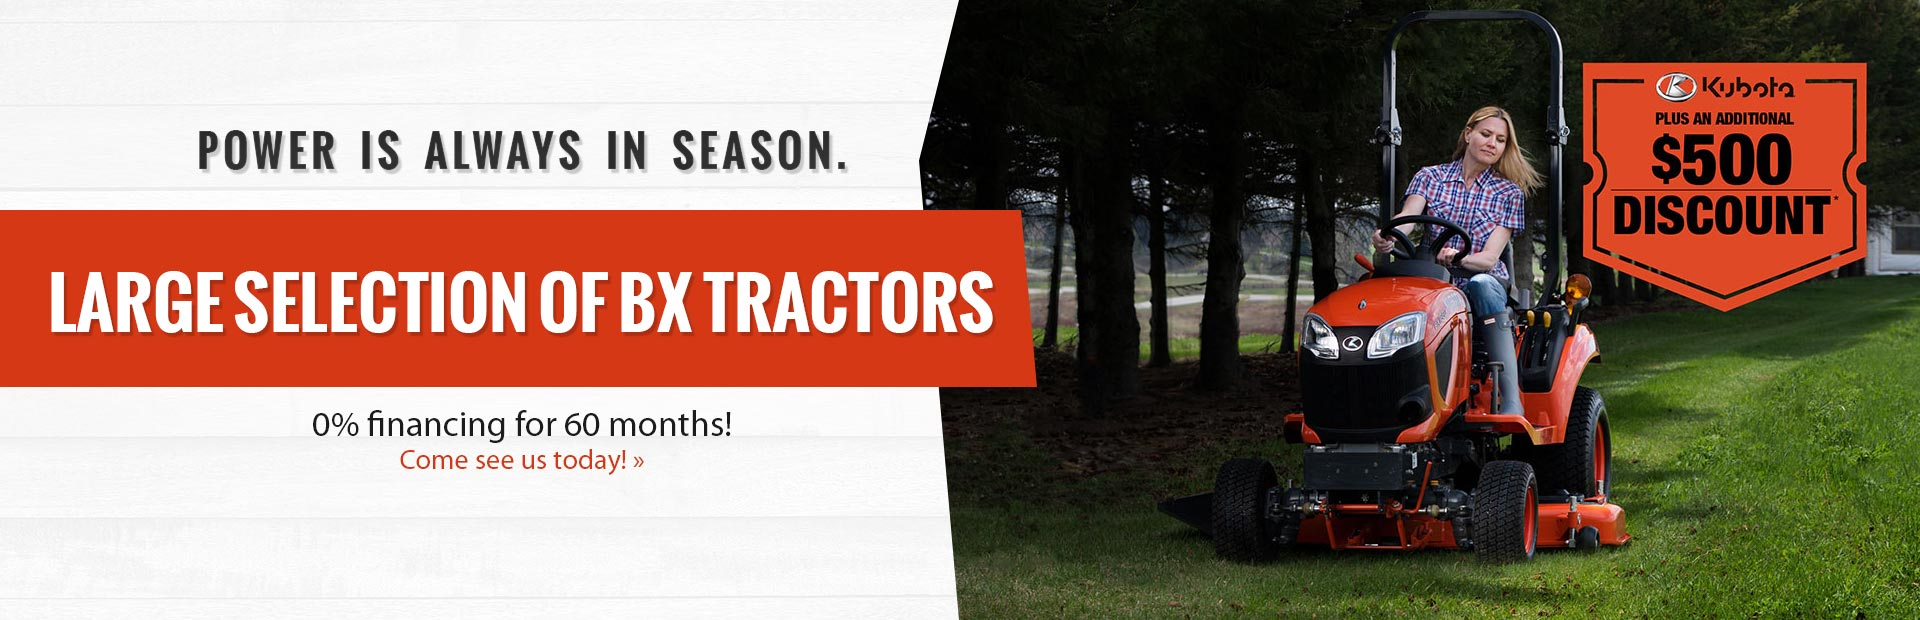 Power is always in Season! We Have a Large Selection of BX Tractors